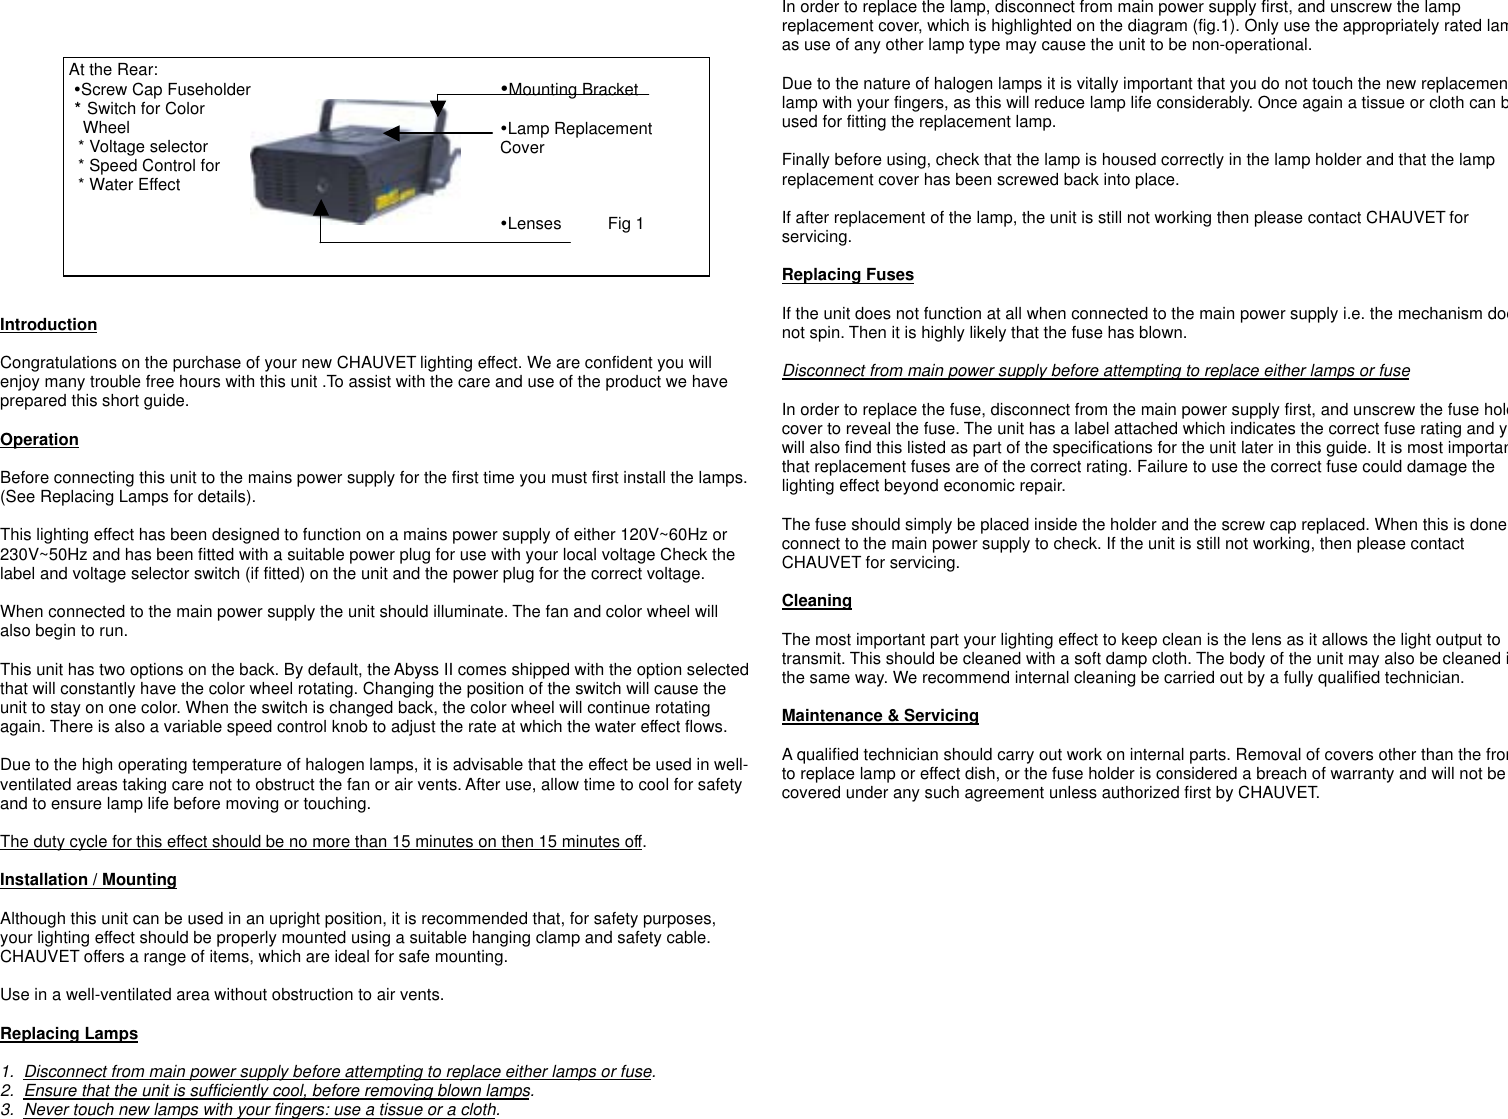 Chauvet Ch 444A Users Manual